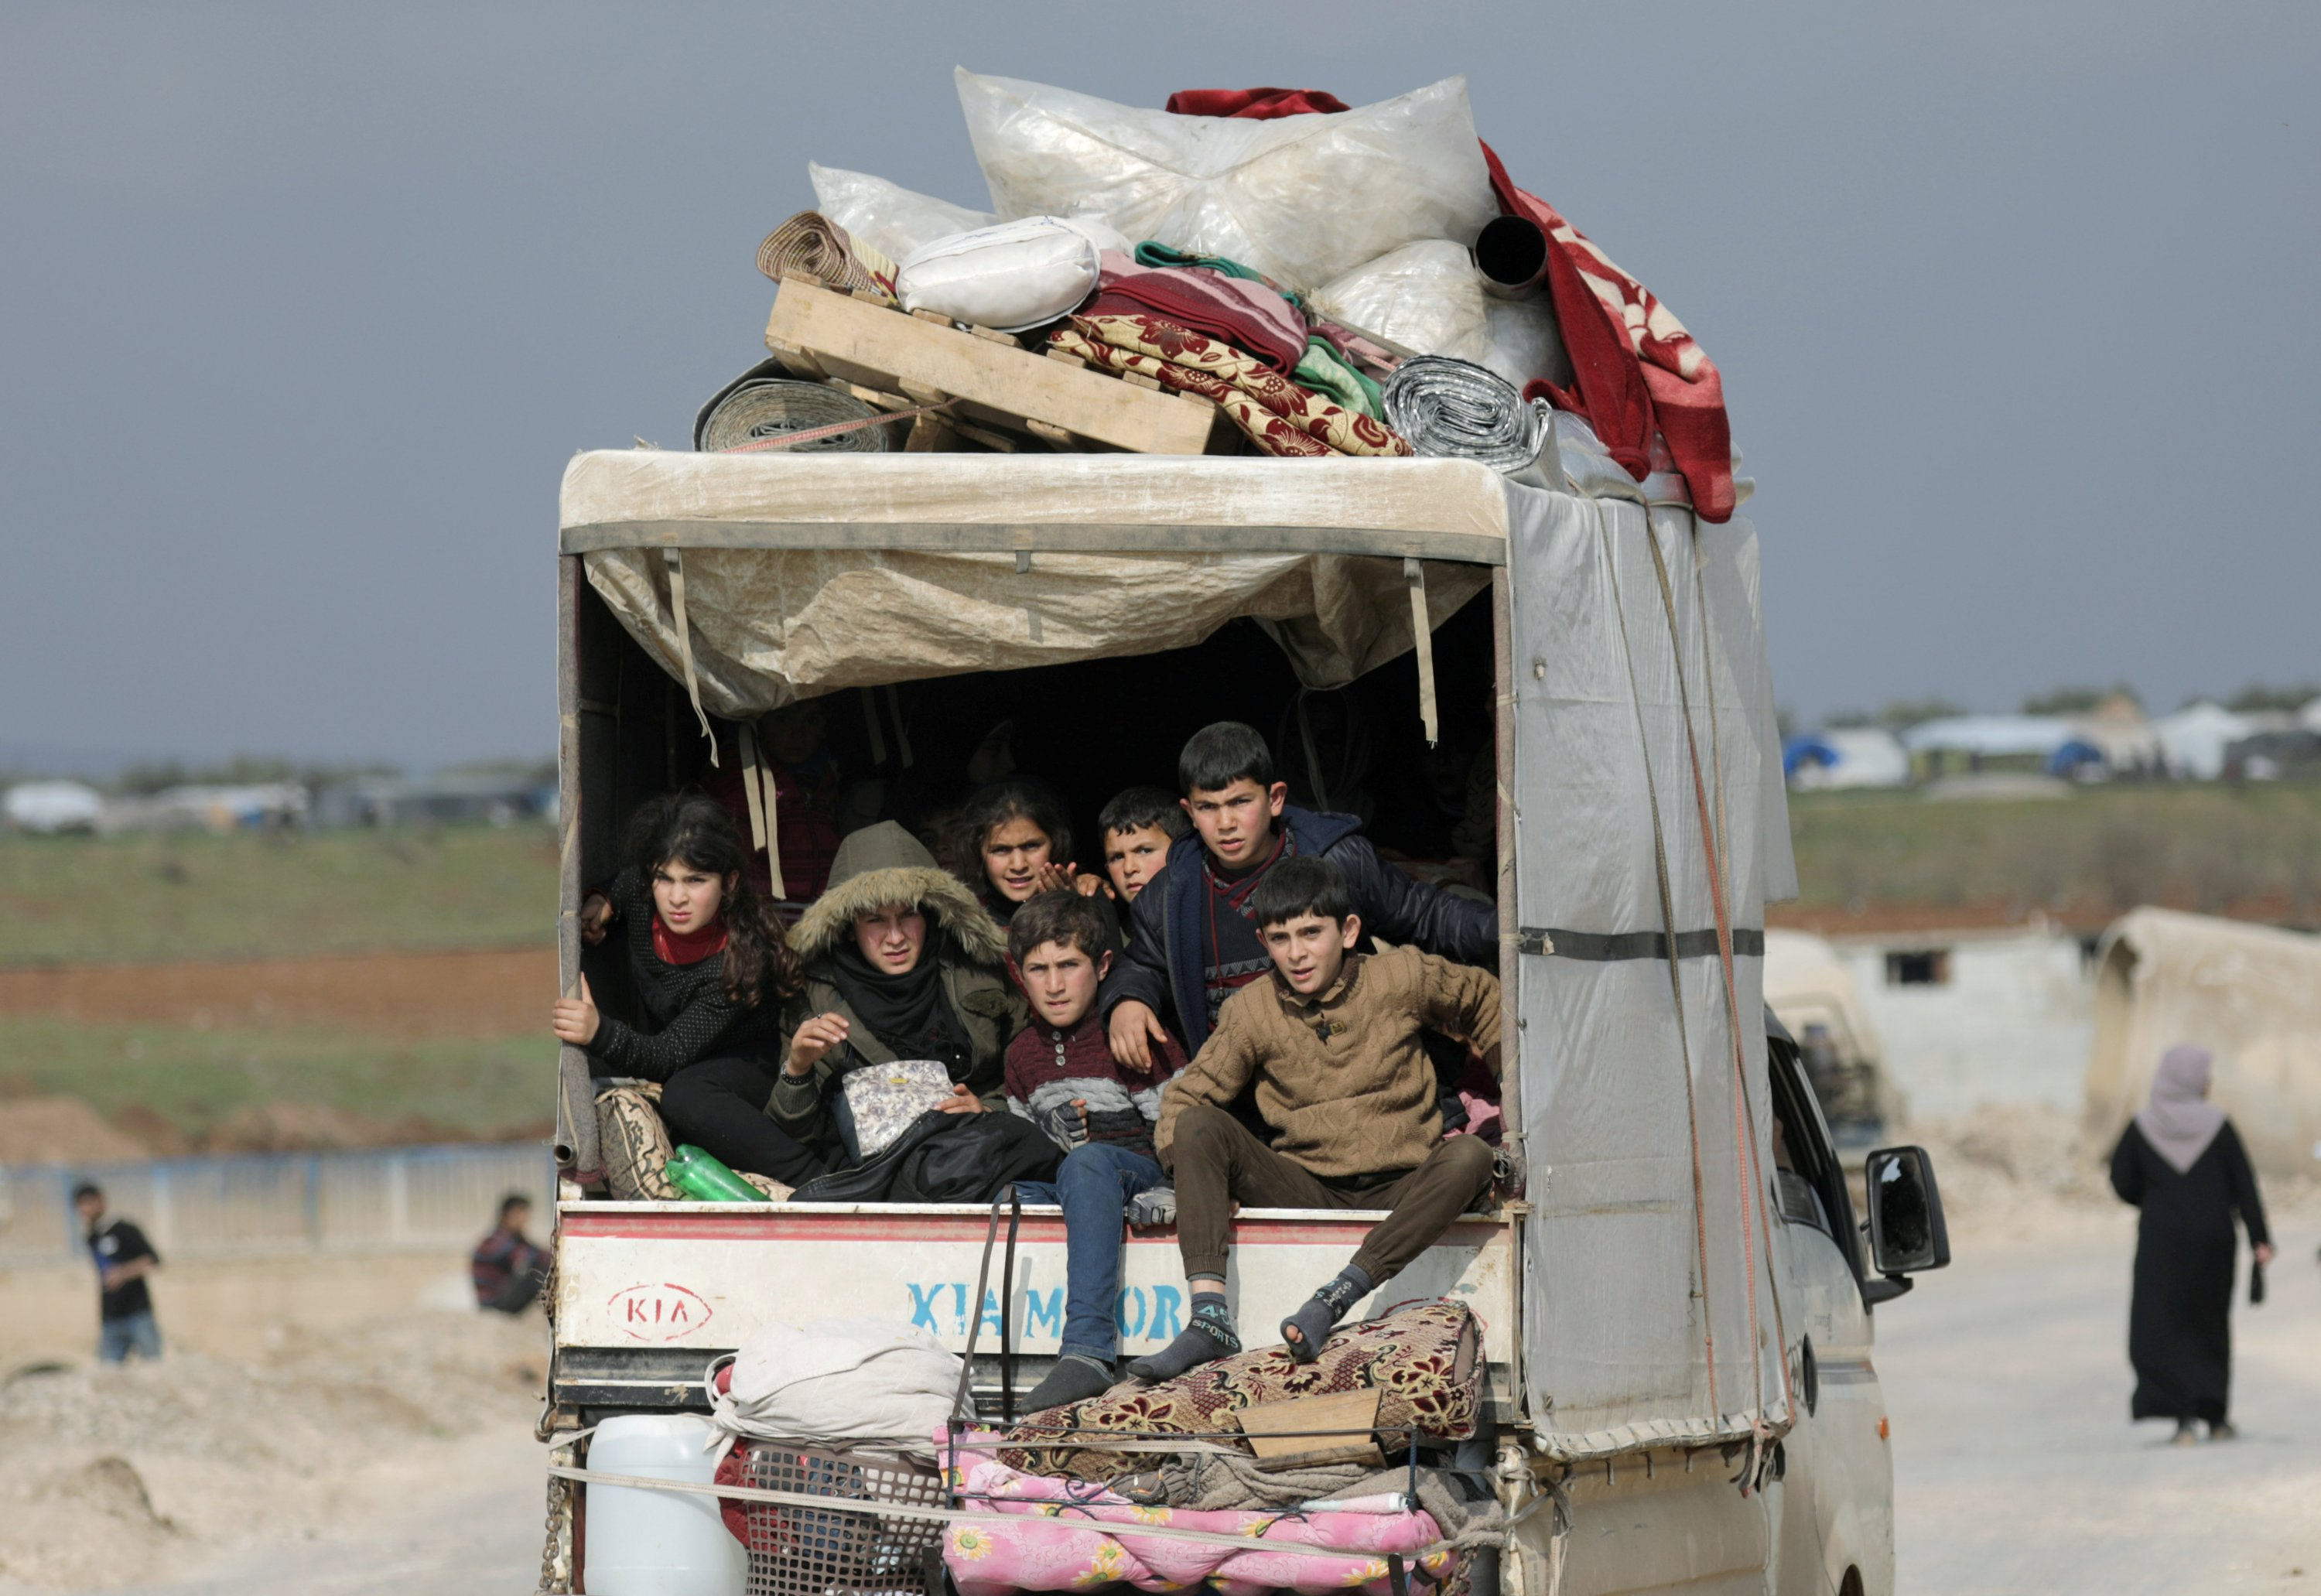 Internally displaced children ride in a pickup truck with their belongings in Afrin, northern Syria, Feb. 18, 2020. (Reuters Photo)